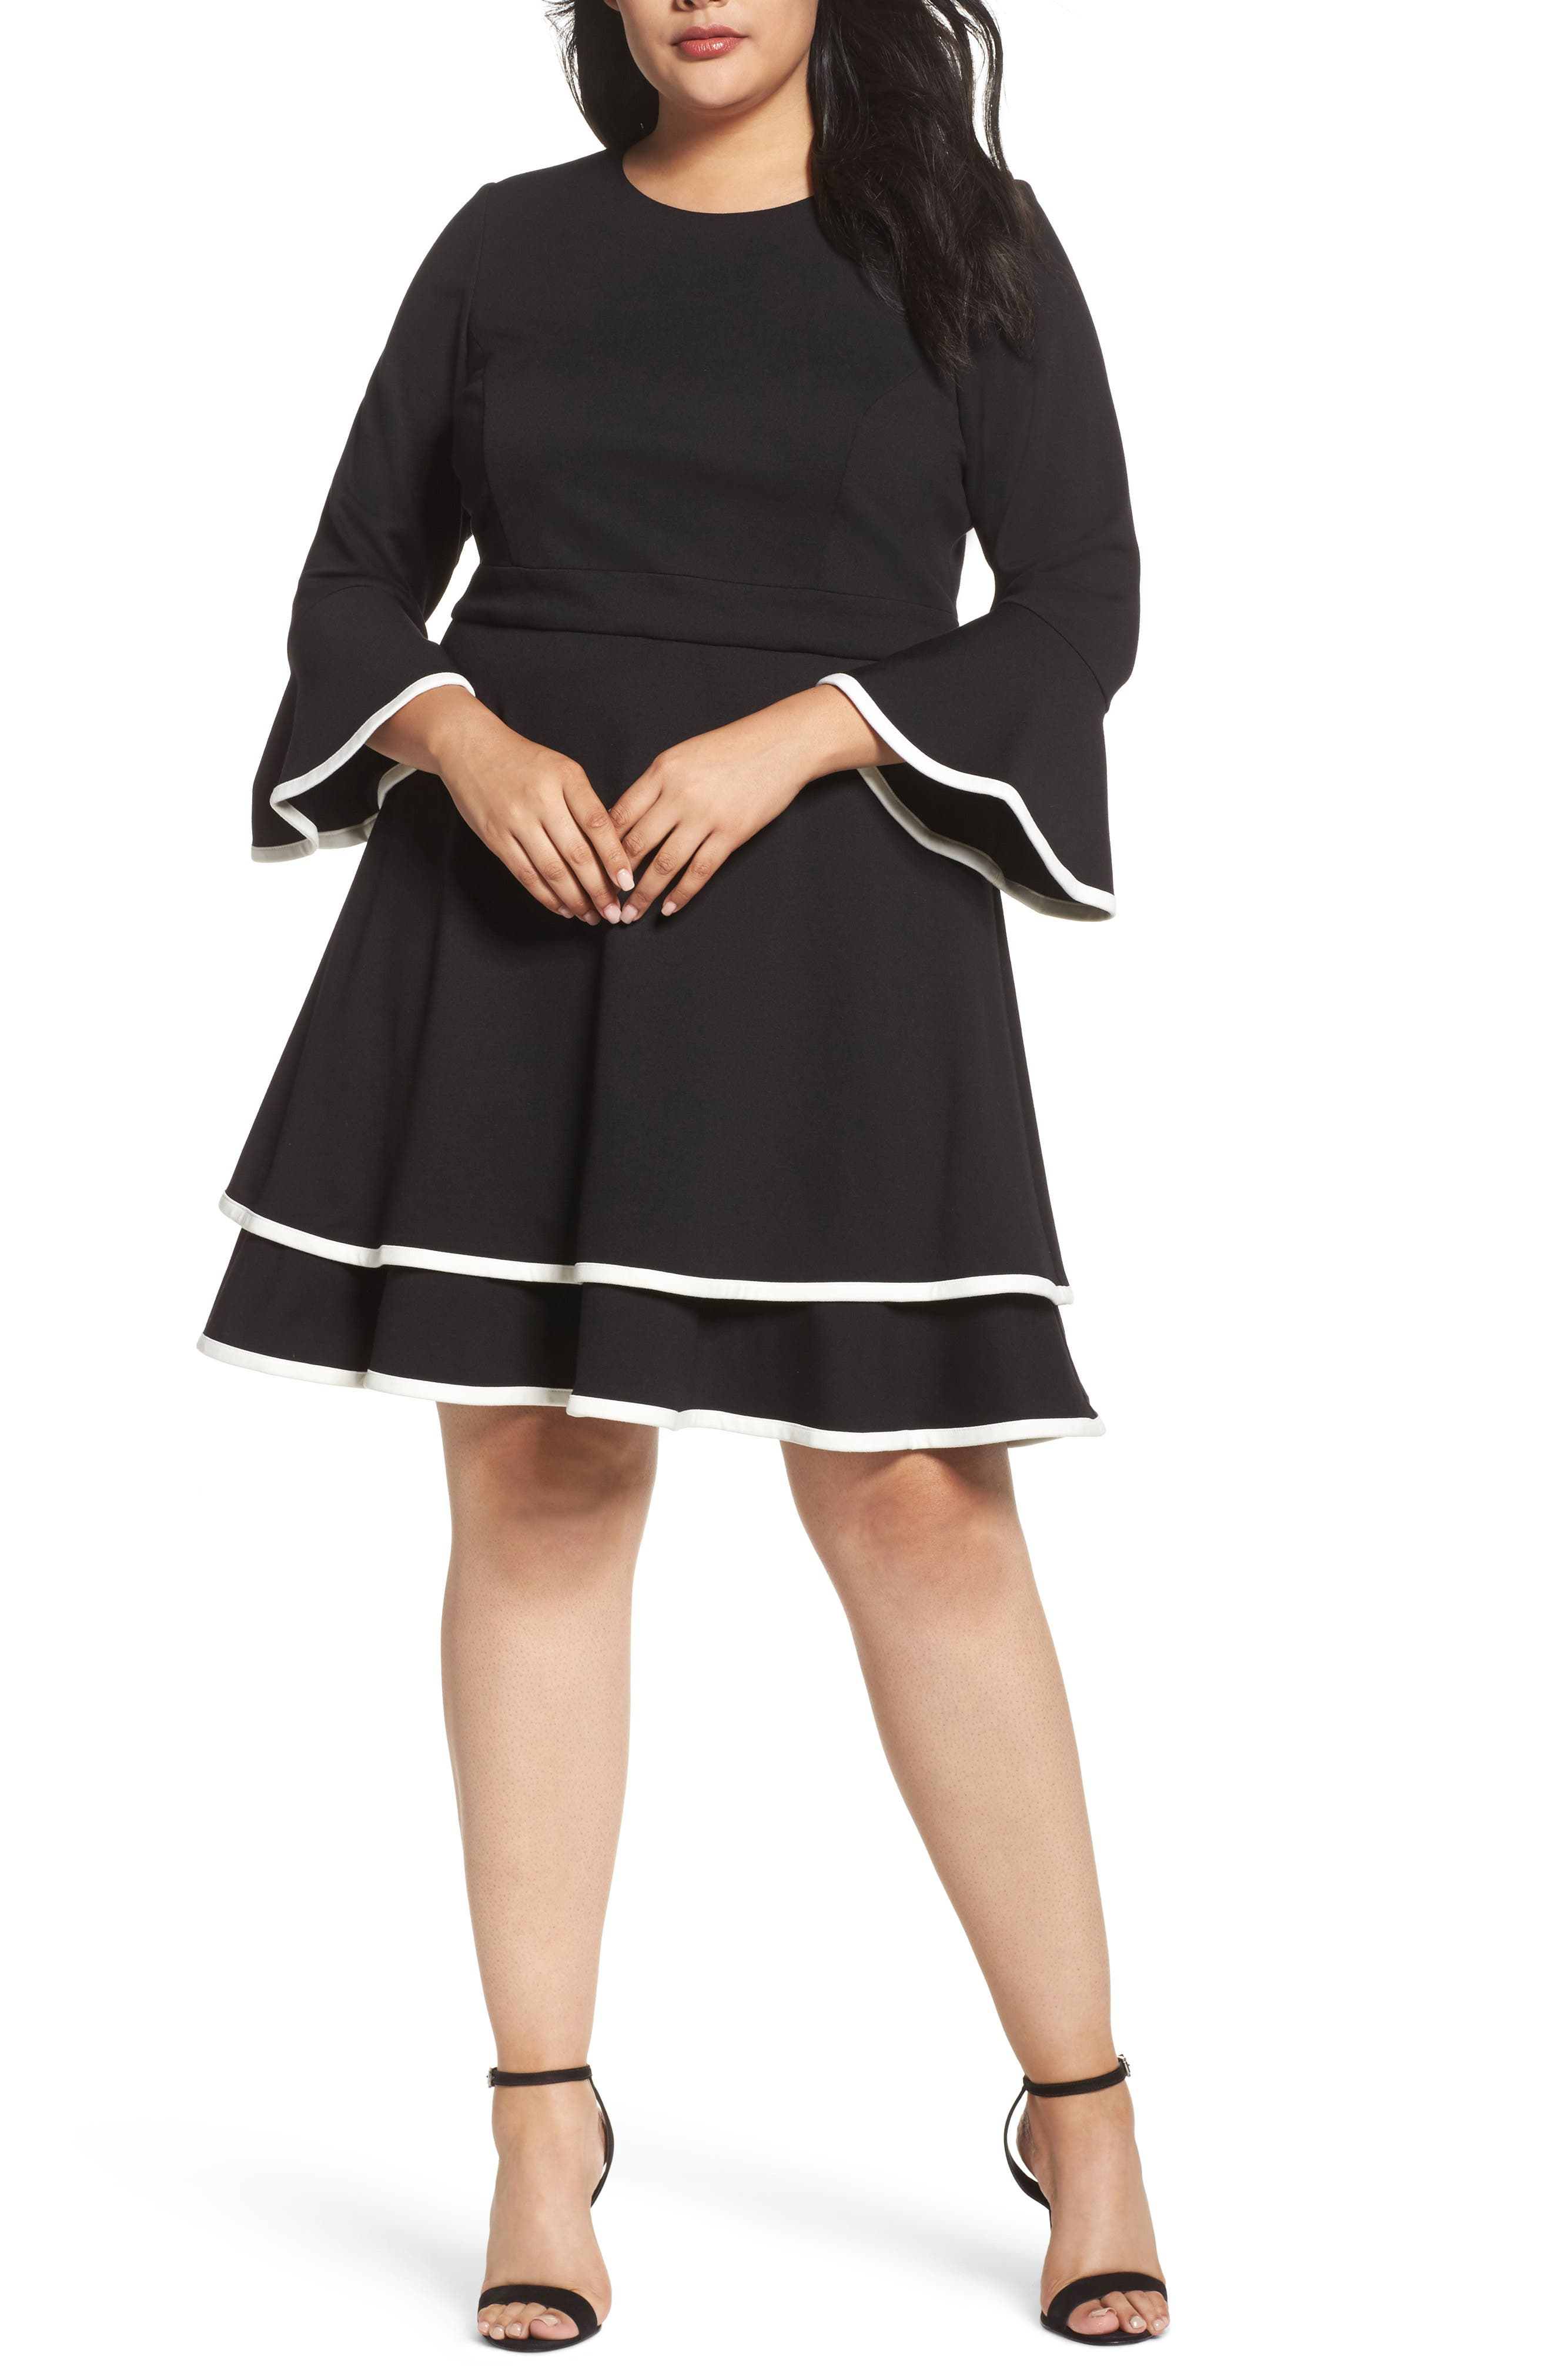 Bell Sleeve Contrast Trim Fit & Flare Dress,                             Main thumbnail 1, color,                             BLACK/ IVORY